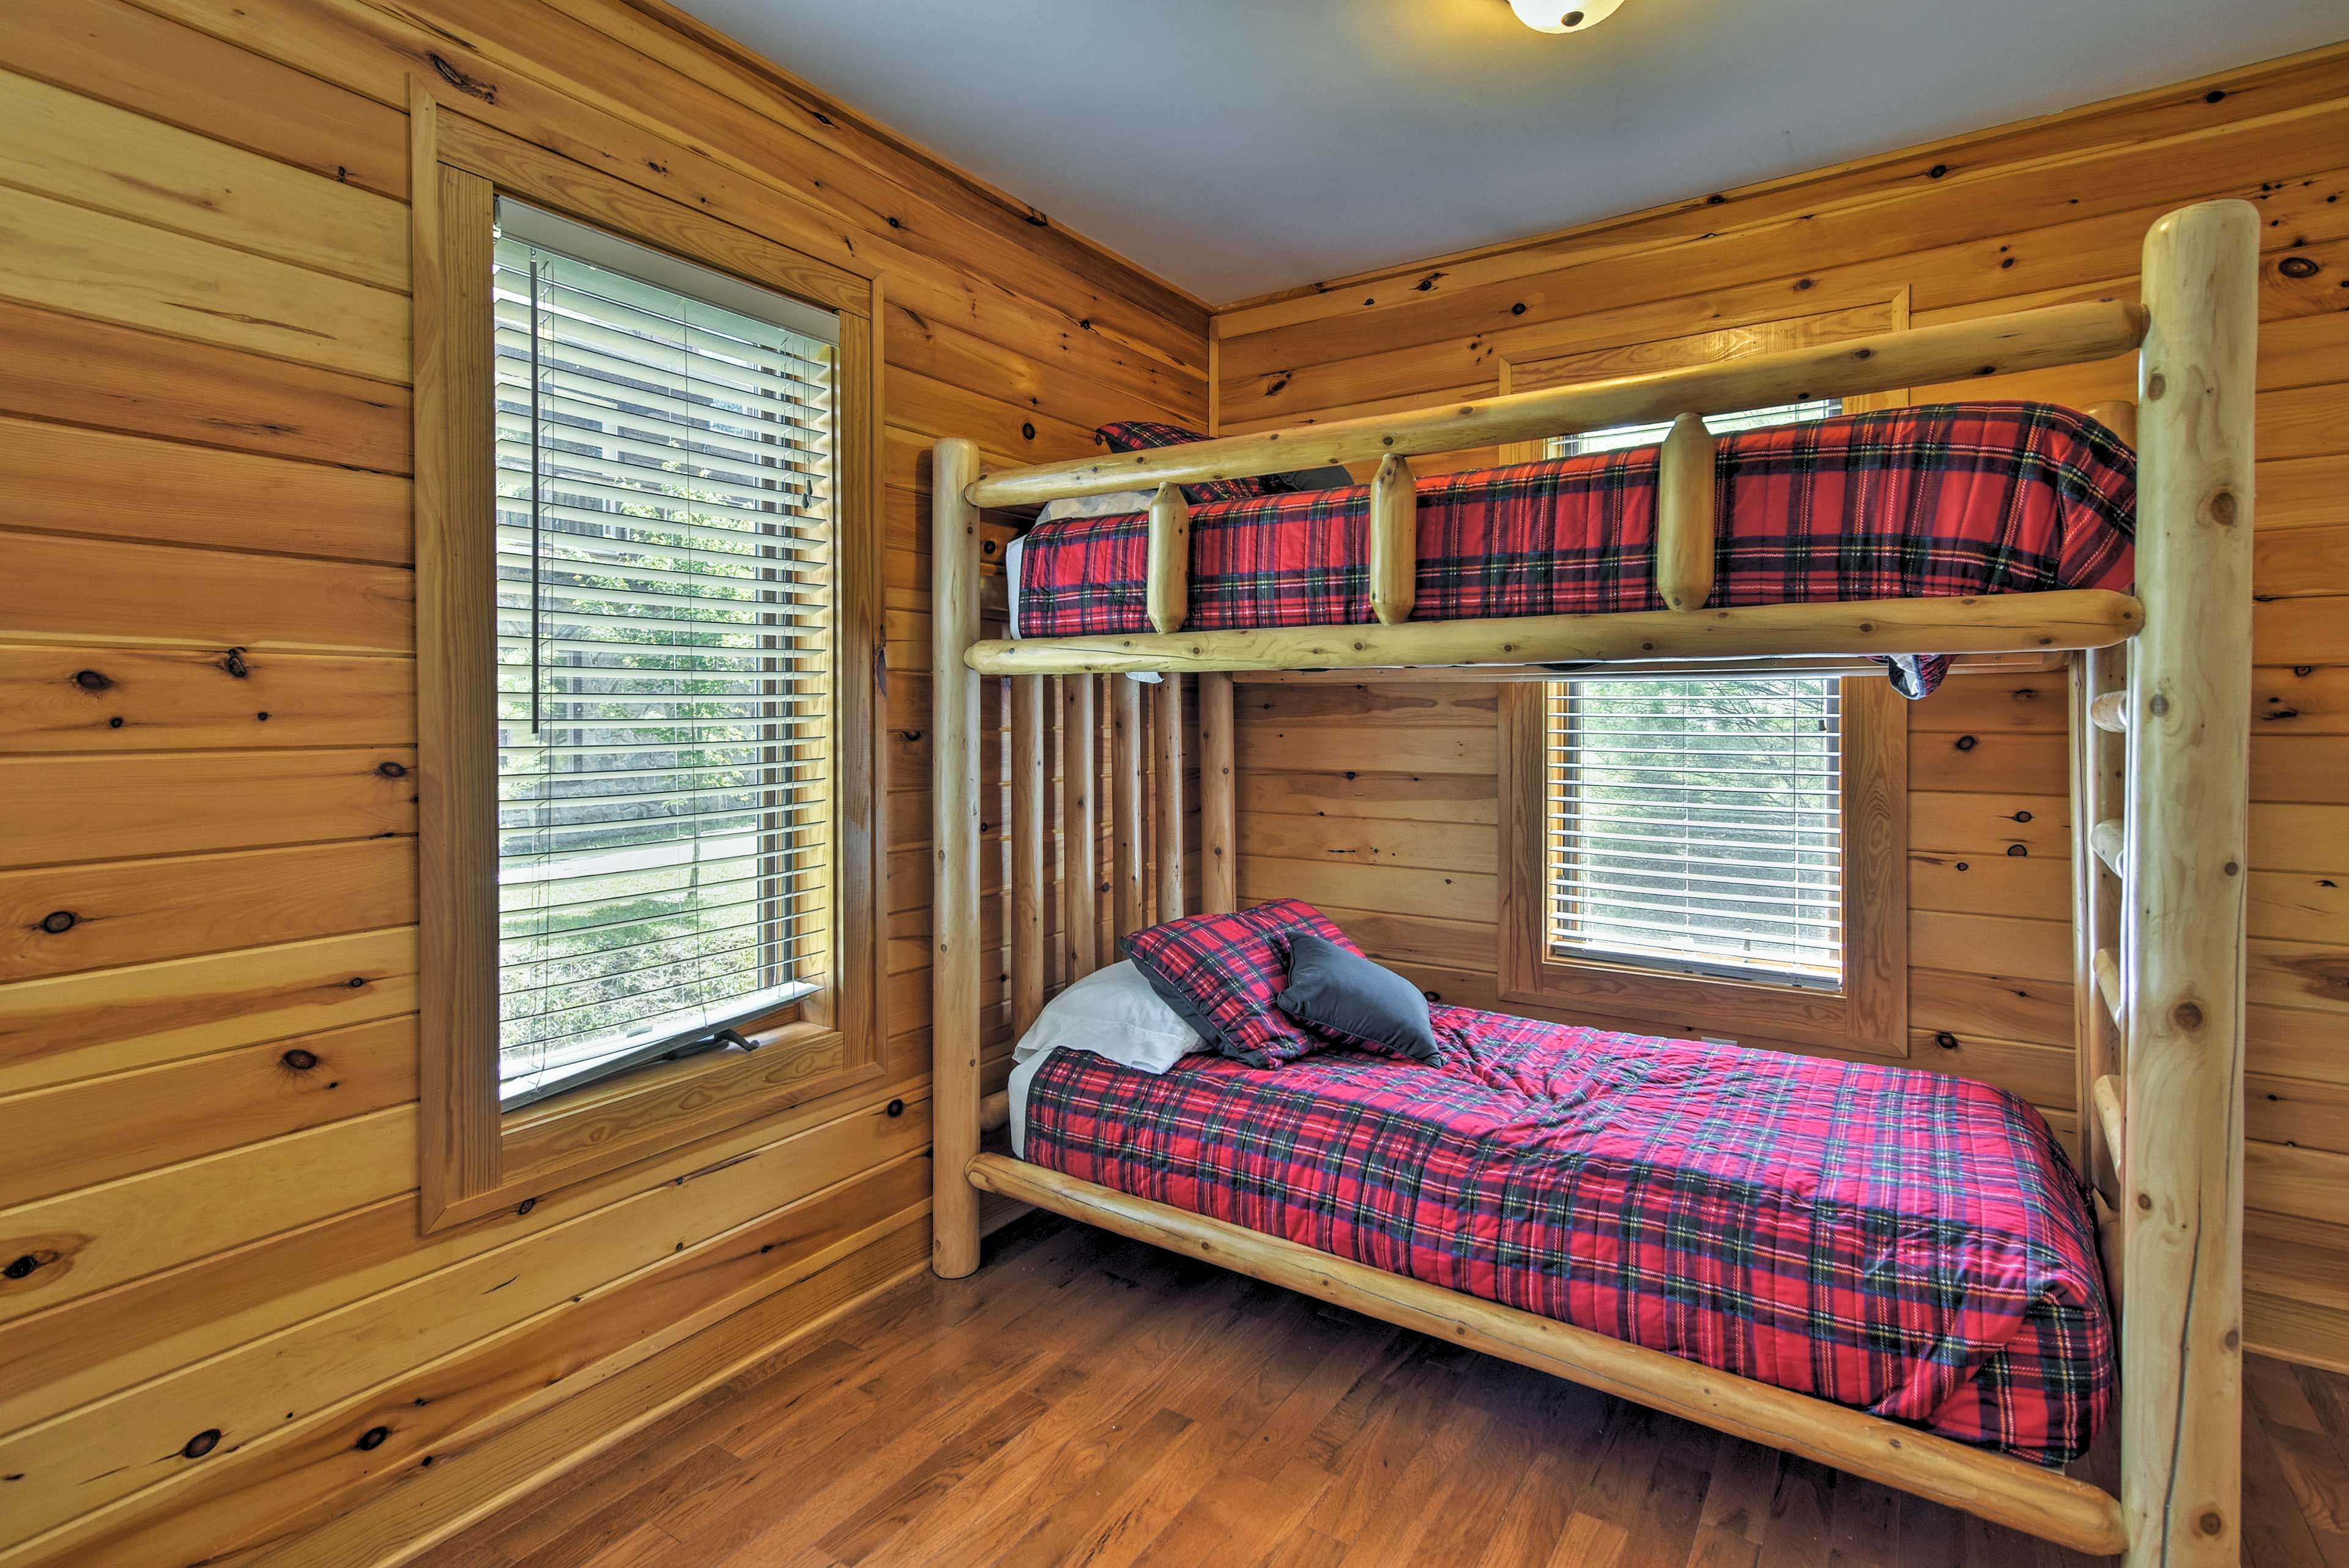 This room boasts a twin-over-twin bunk bed.